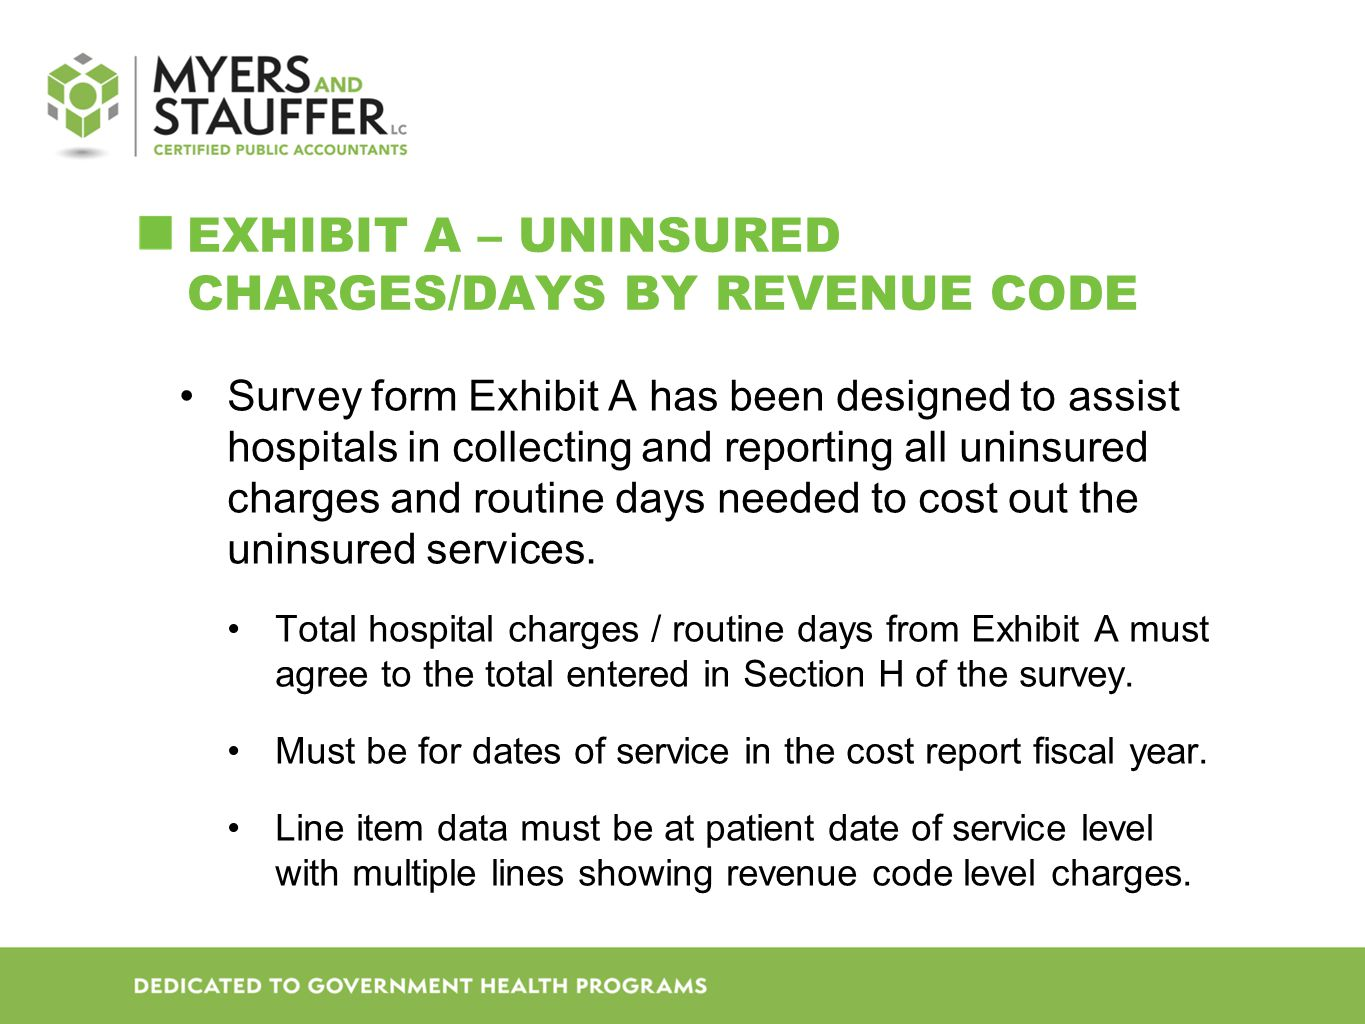 EXHIBIT A – Uninsured Charges/Days by revenue code